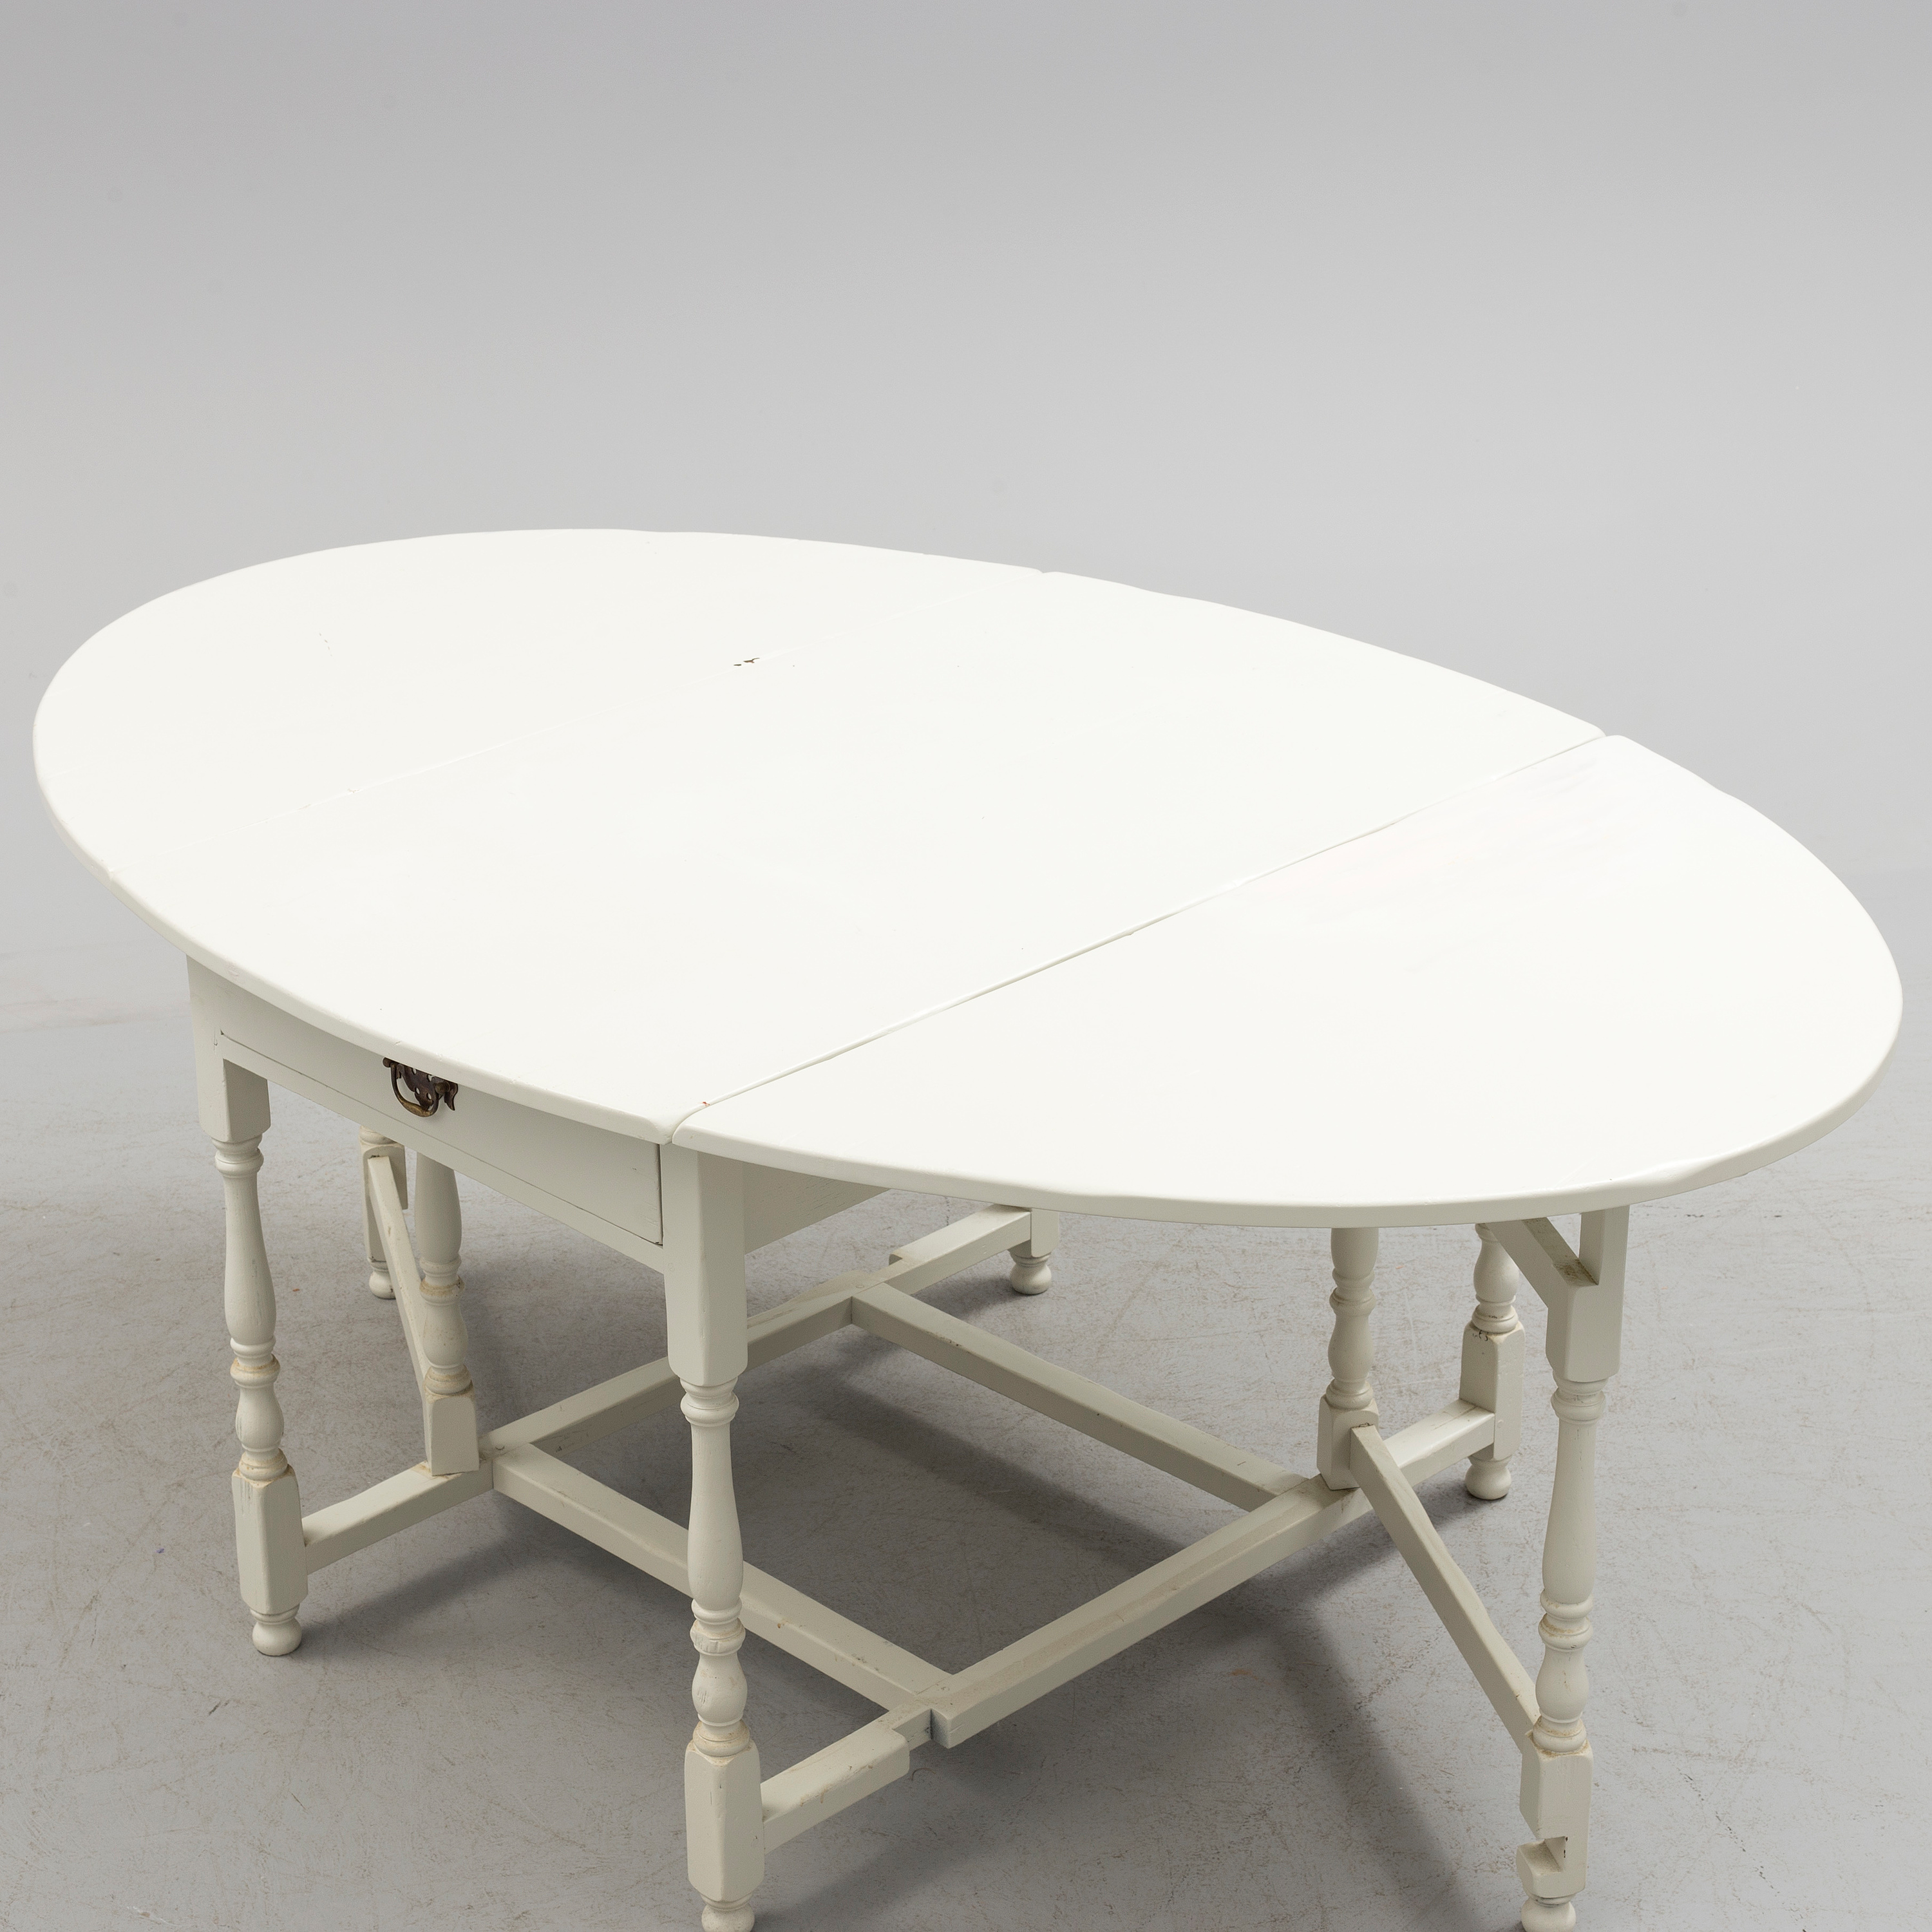 A Swedish country style painted 19th century flap table